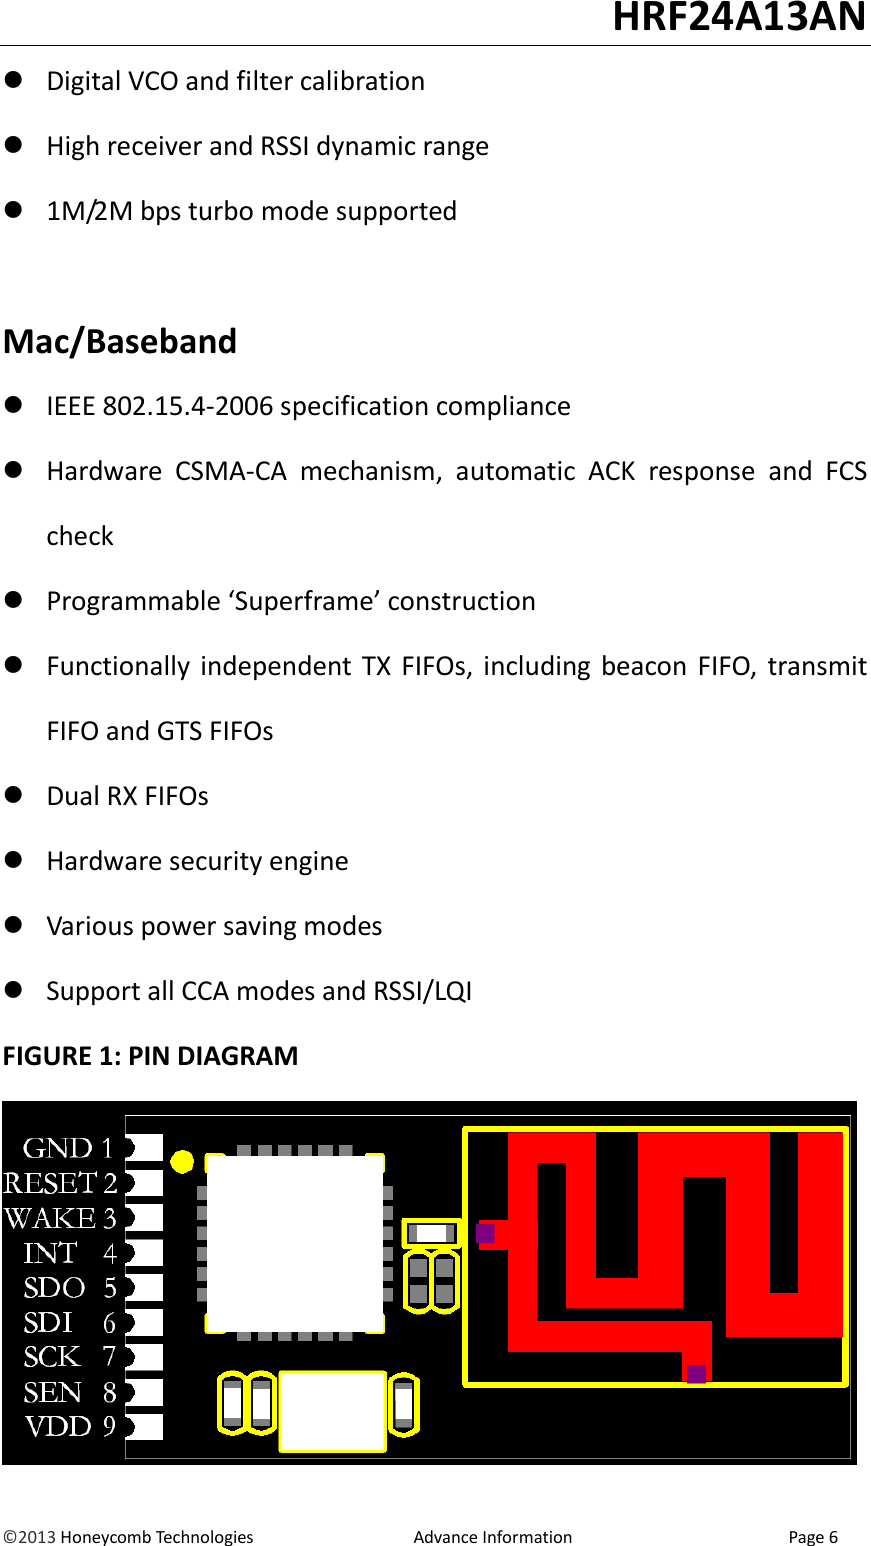 Honeycomb user guide array honeycomb technologies hrf24a13an rf 2 4g module user manual manual rh usermanual wiki fandeluxe Image collections